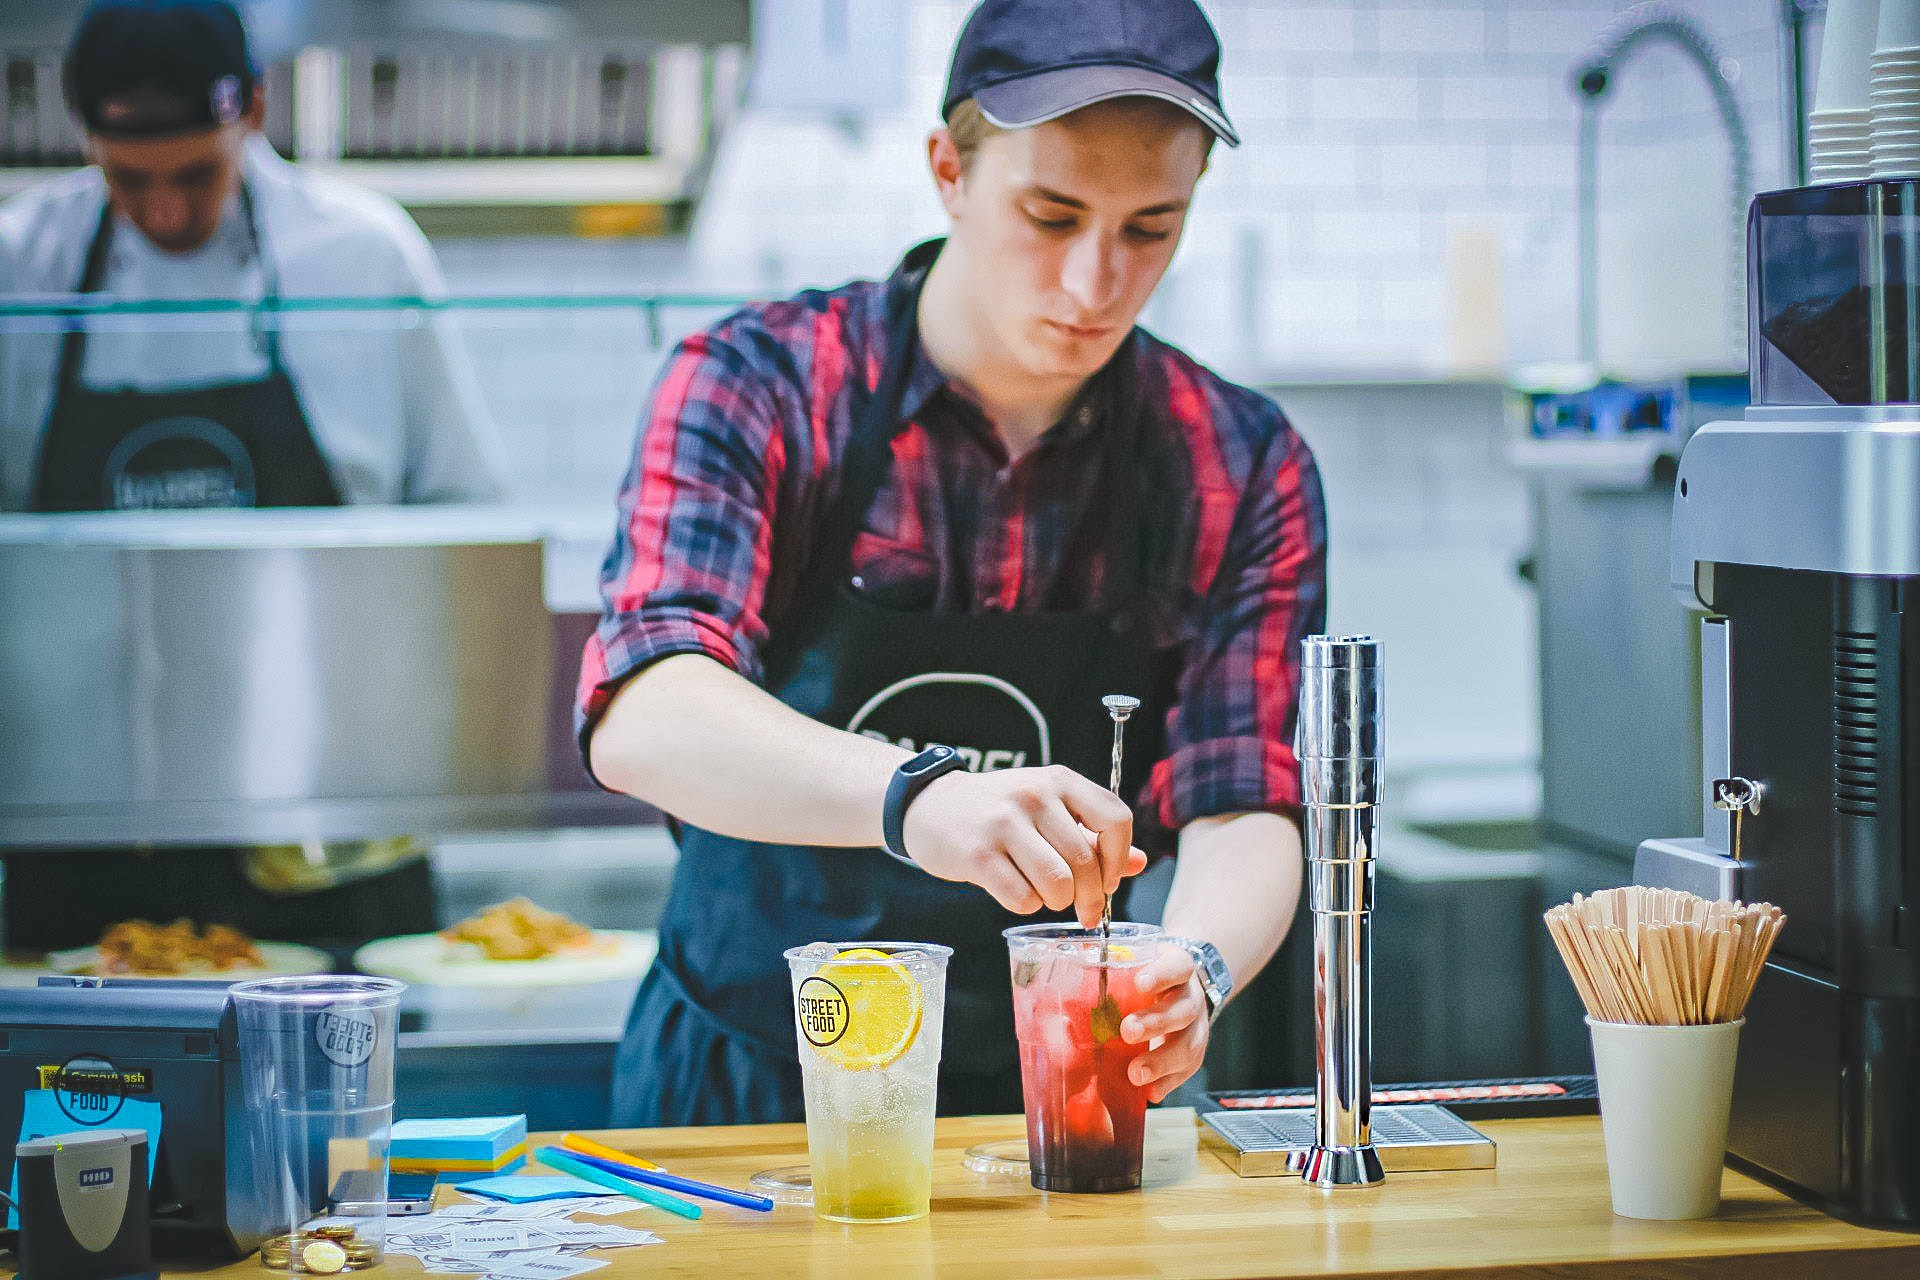 Person working in a kitchen making a drink for a customer